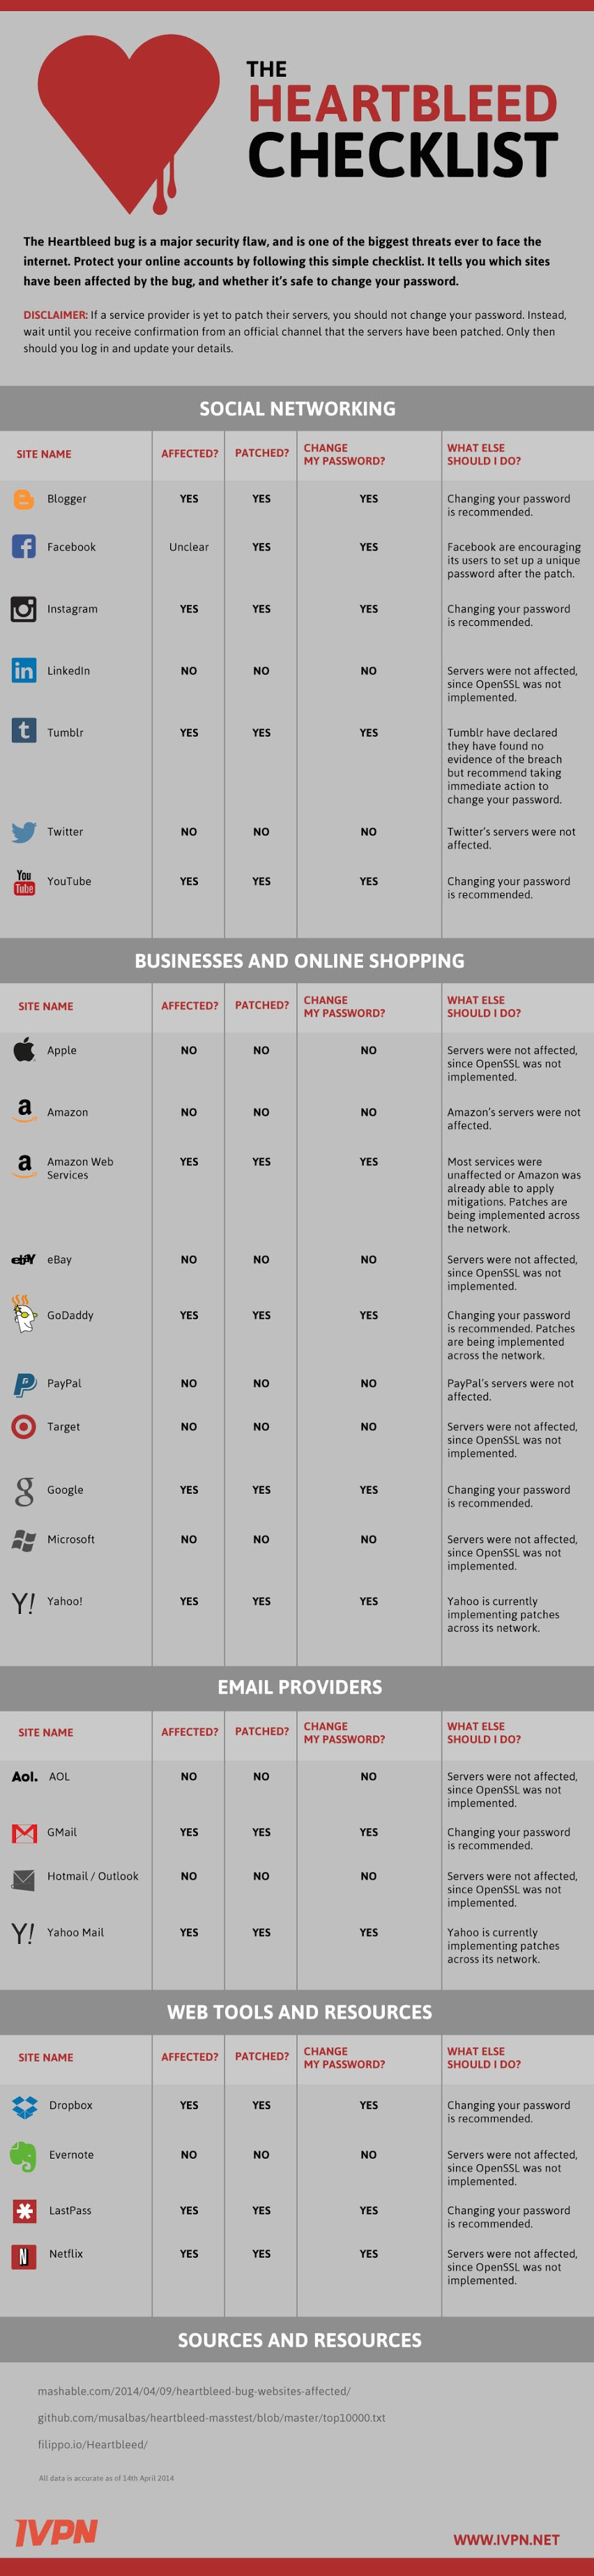 The Heartbleed Checklist: Should You Change Your Social Media Passwords - infographic